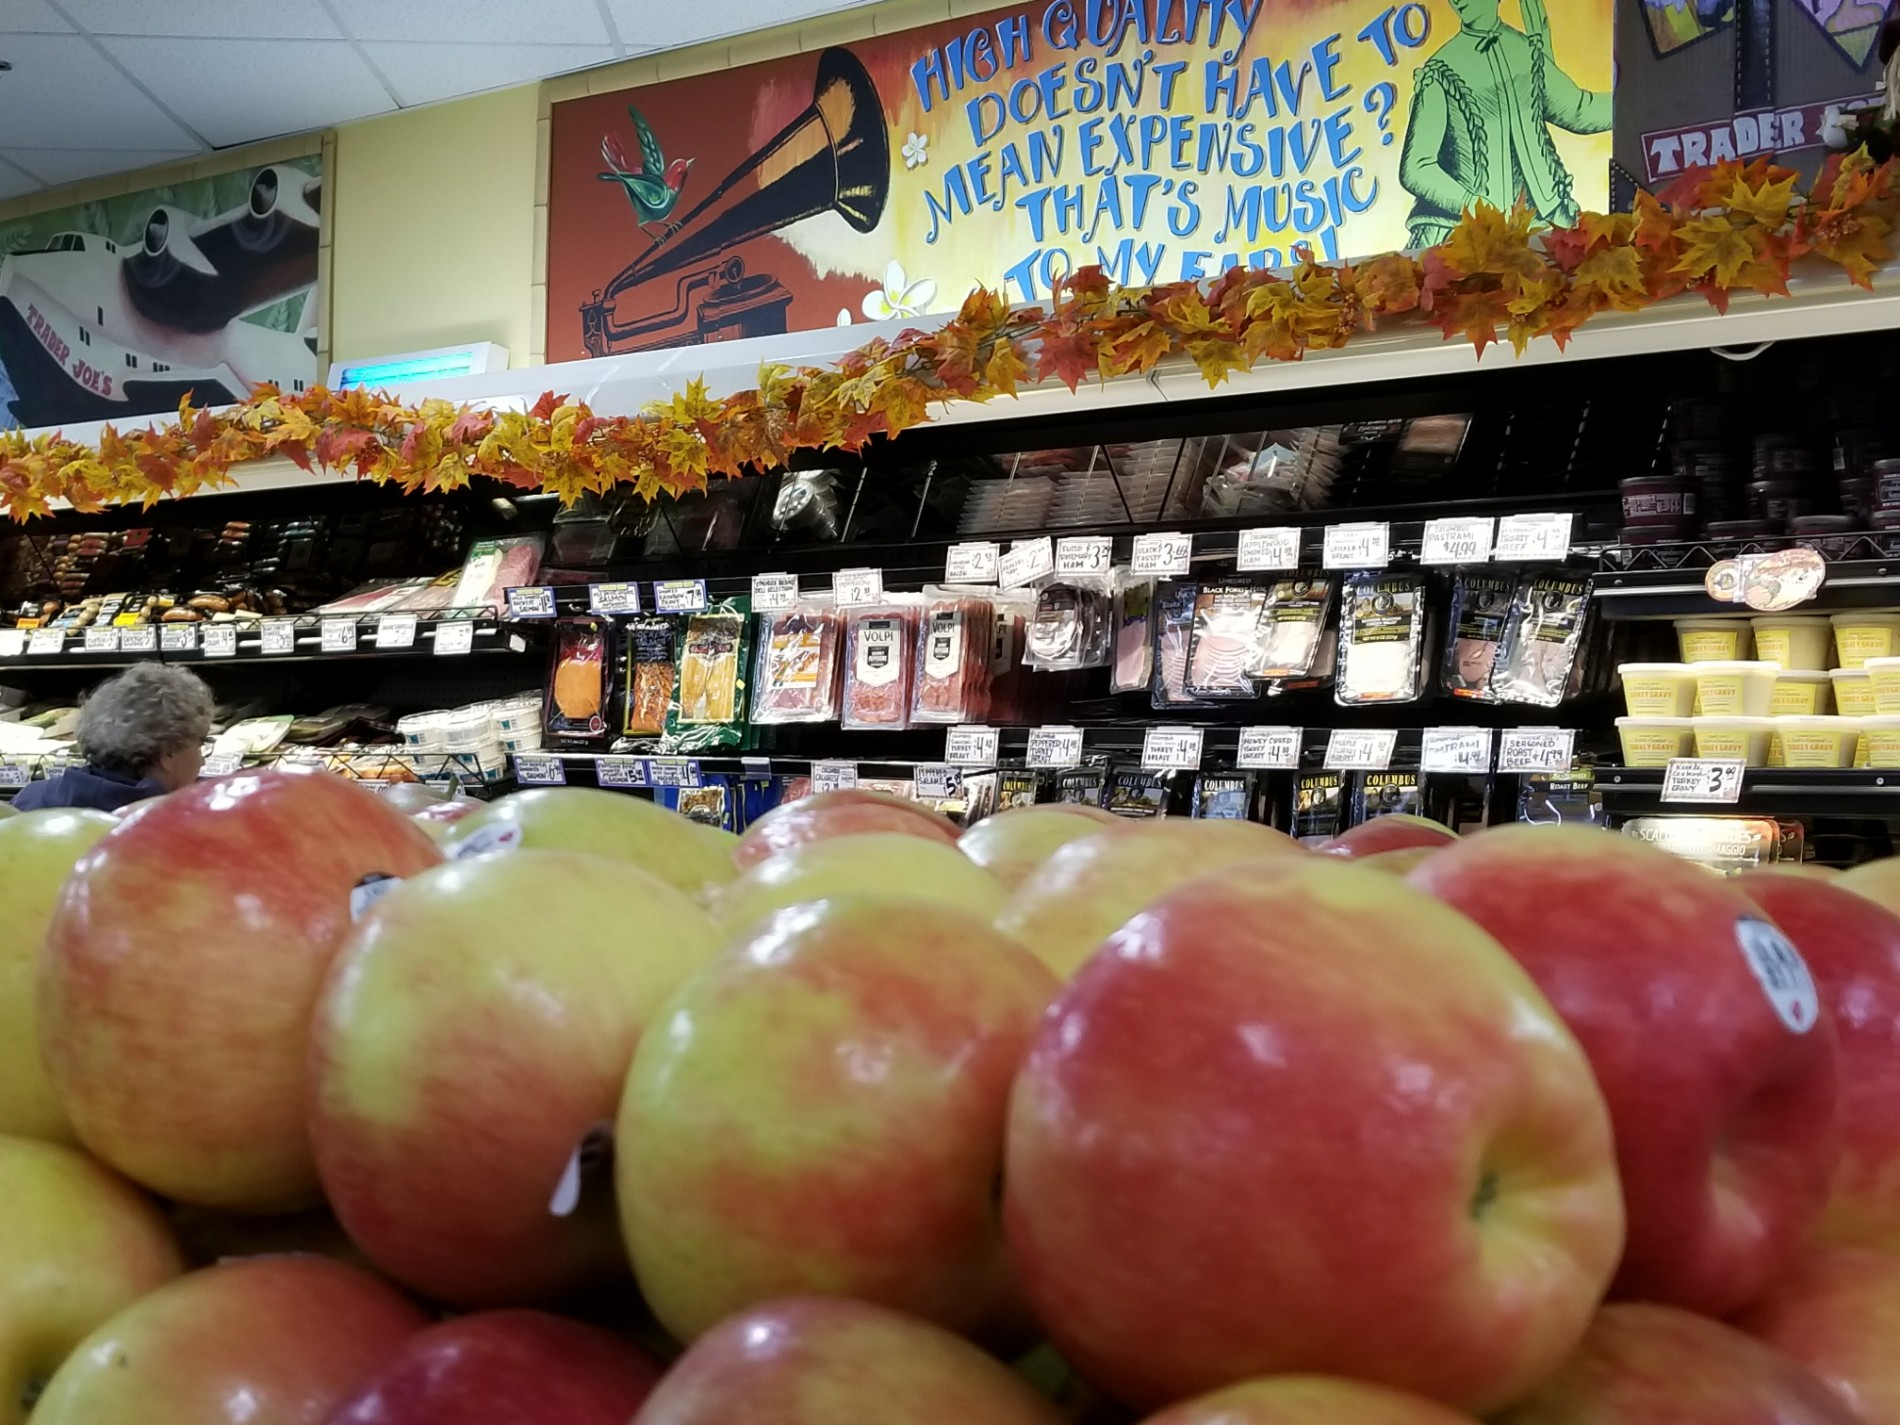 Apples at Trader Joe's